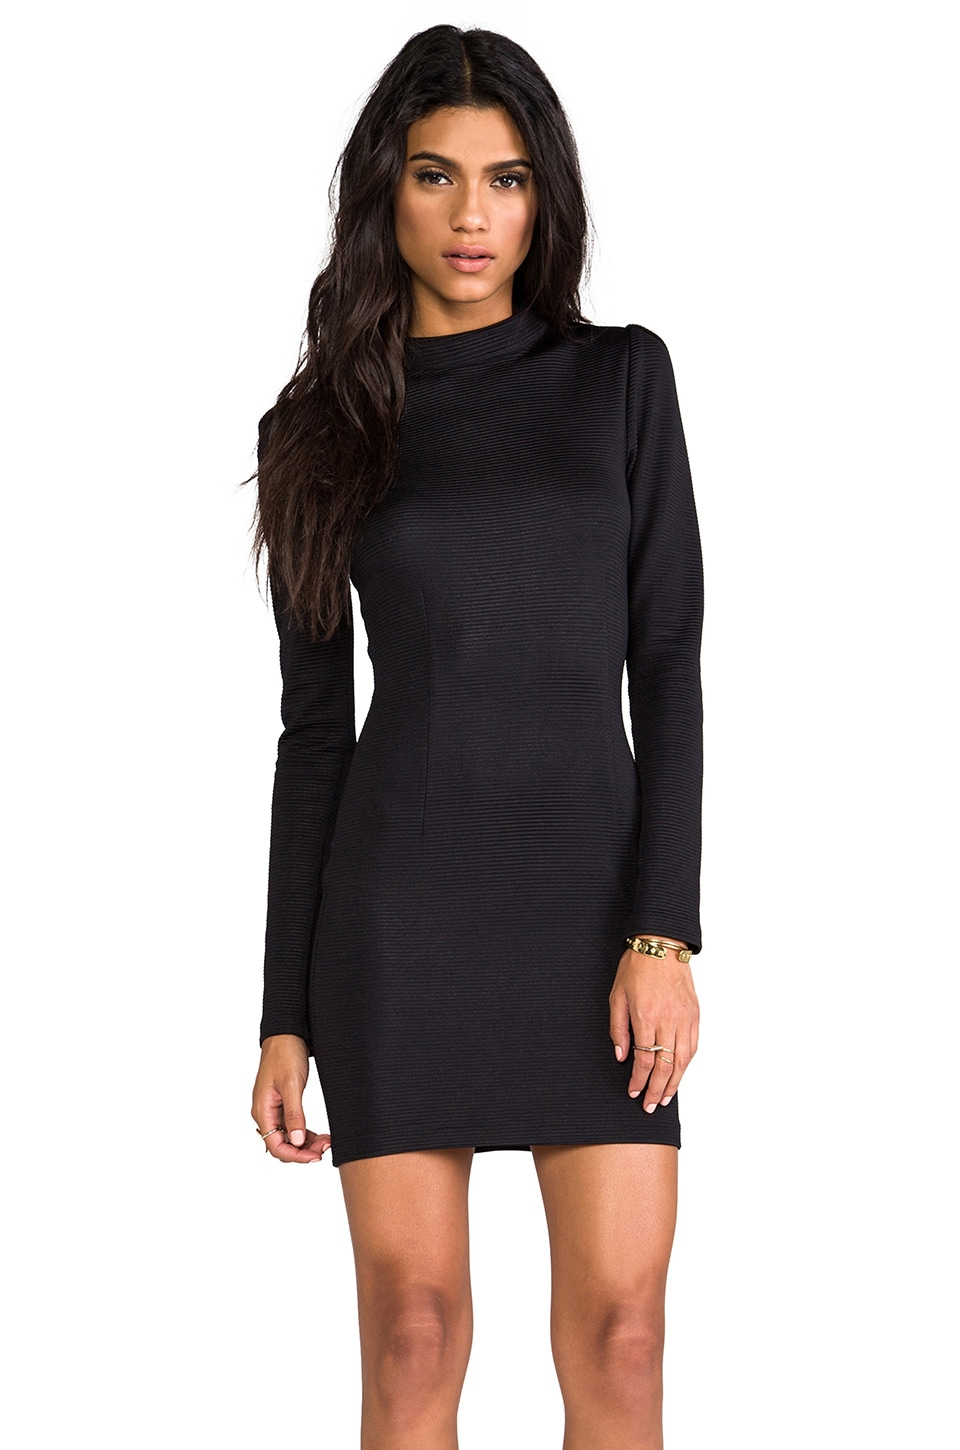 AGAIN Langston Long Collar Dress in Slick Black